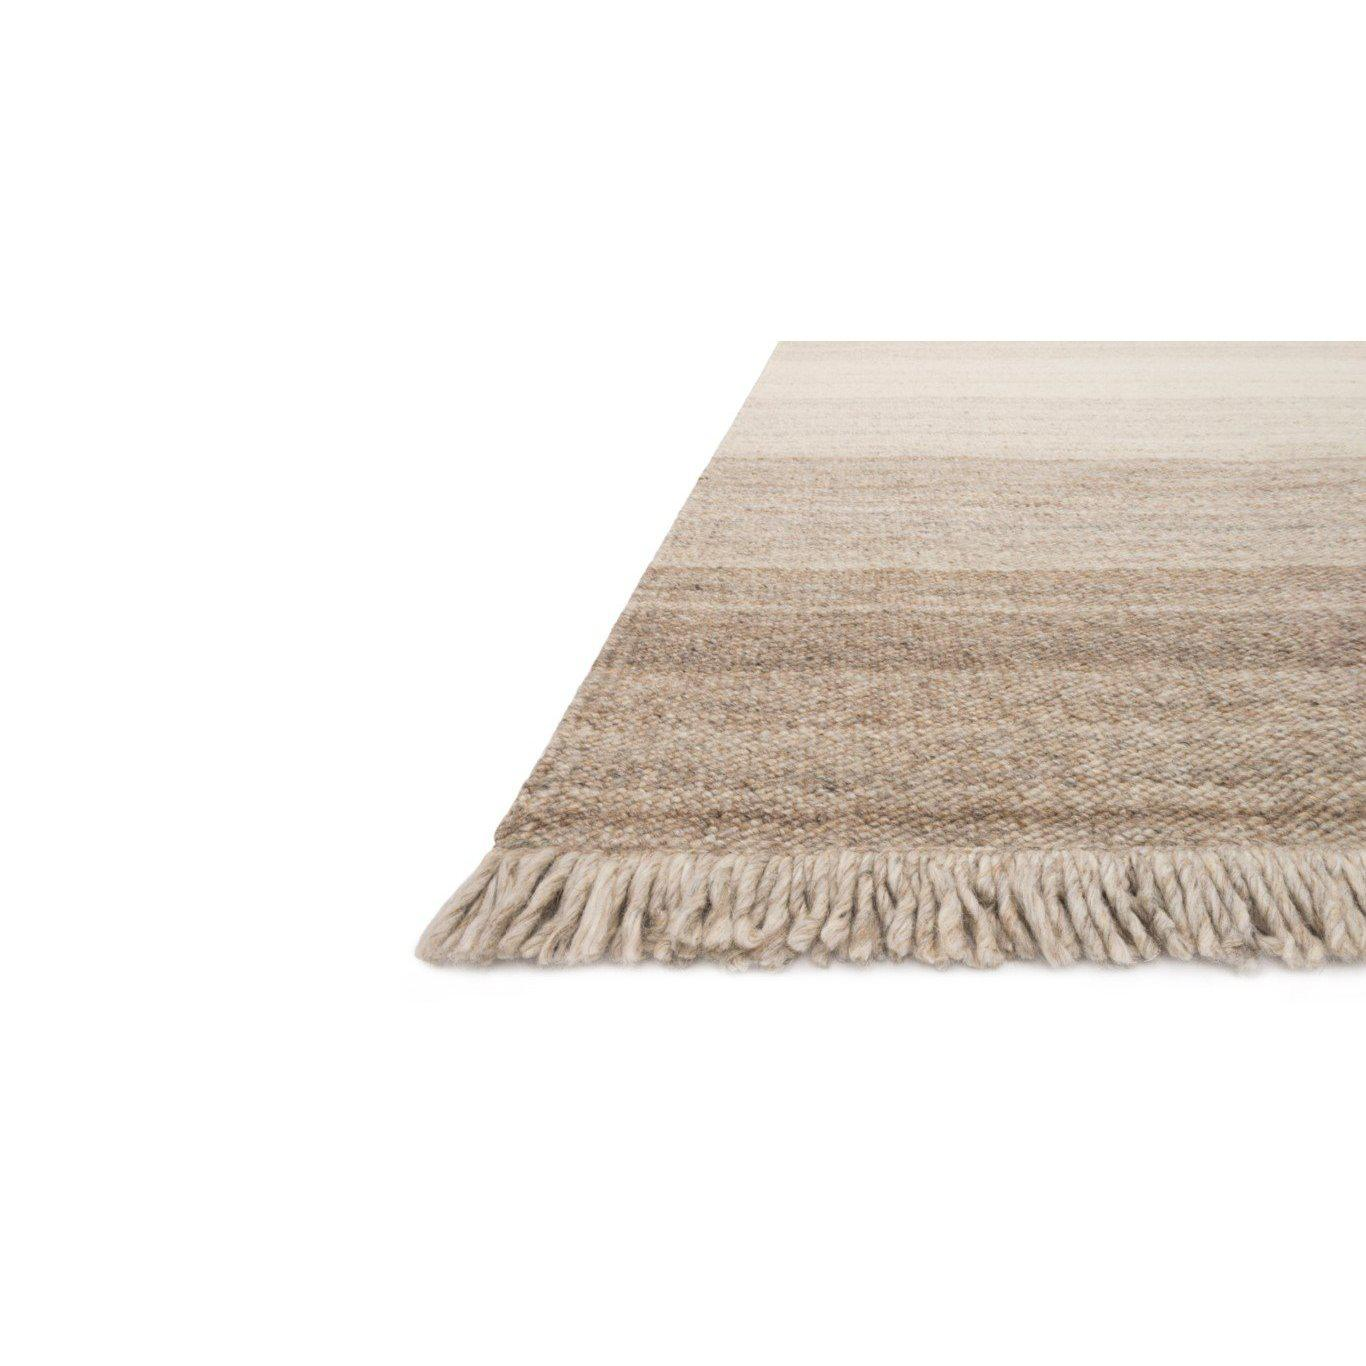 Joanna Gaines Phillip Rug Collection - PK-01 Neutral-Loloi Rugs-Blue Hand Home